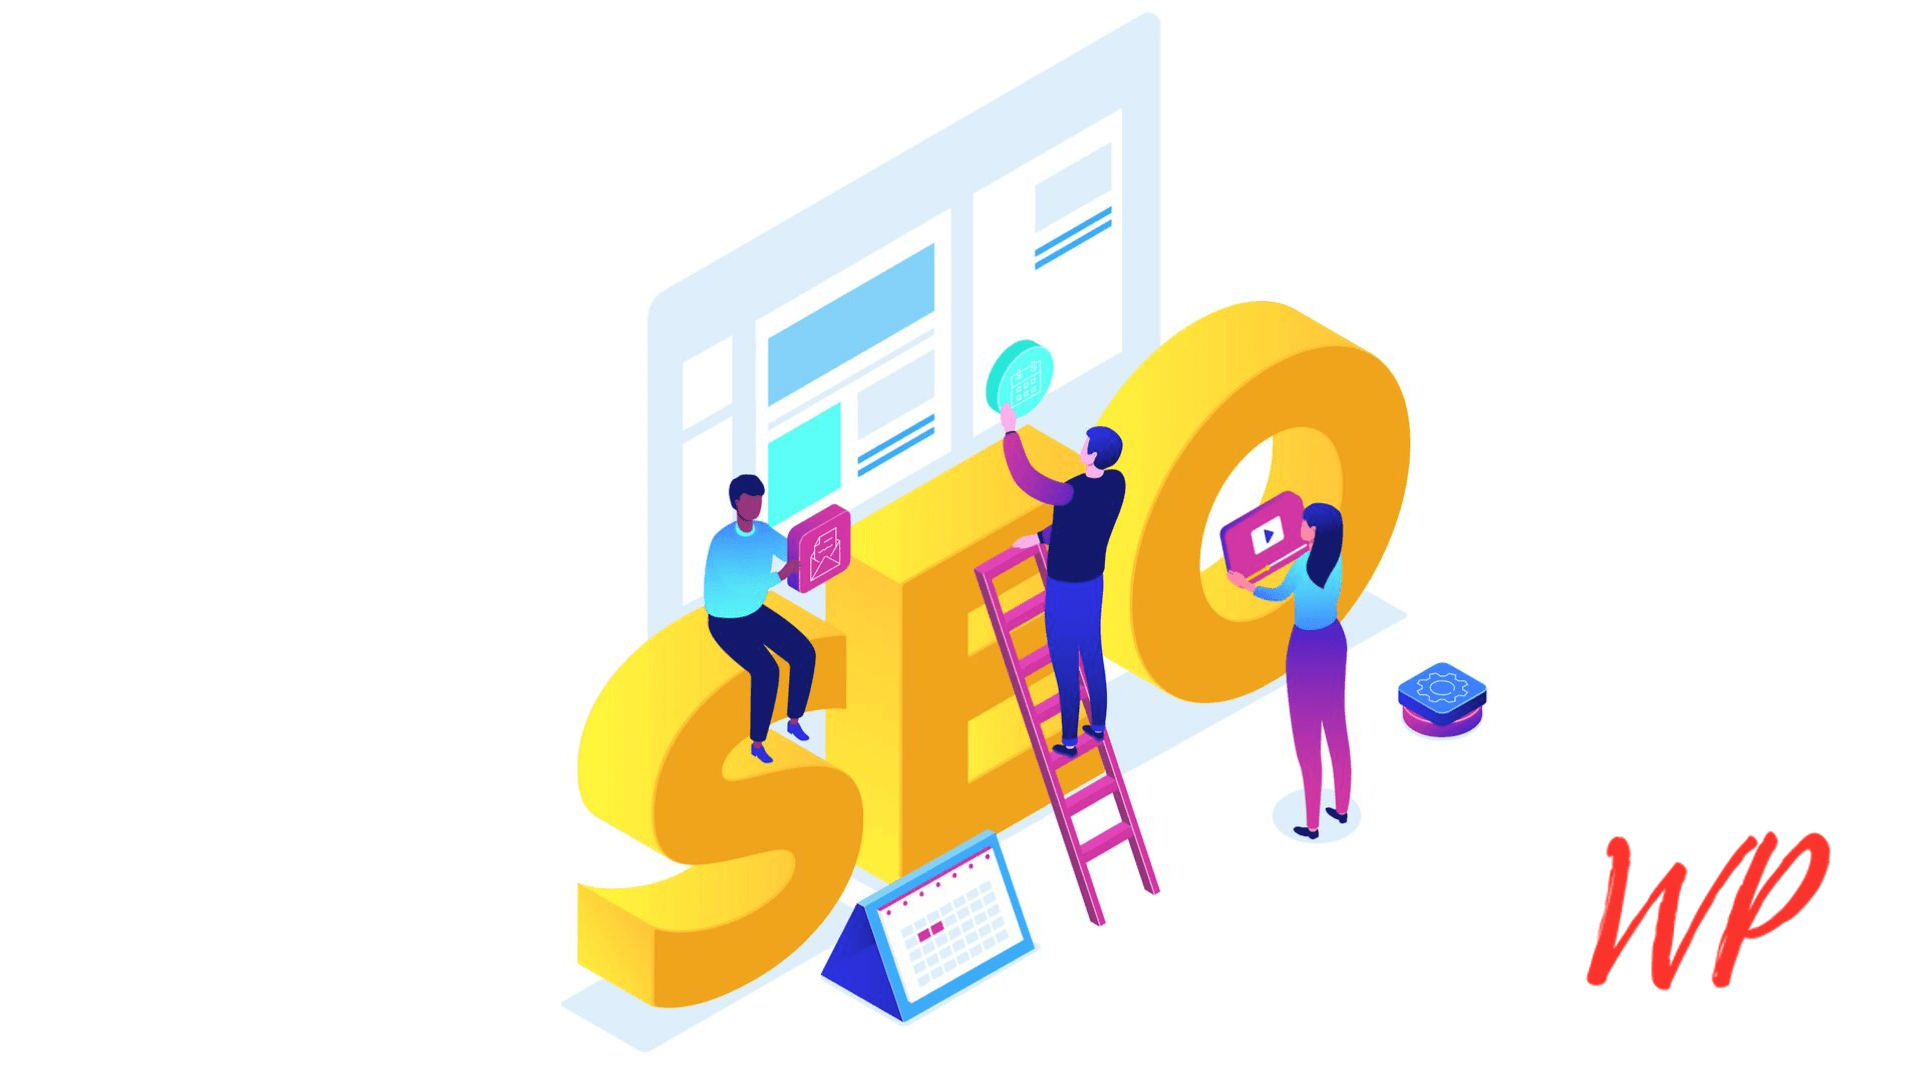 Woocommerce e-platform is SEO